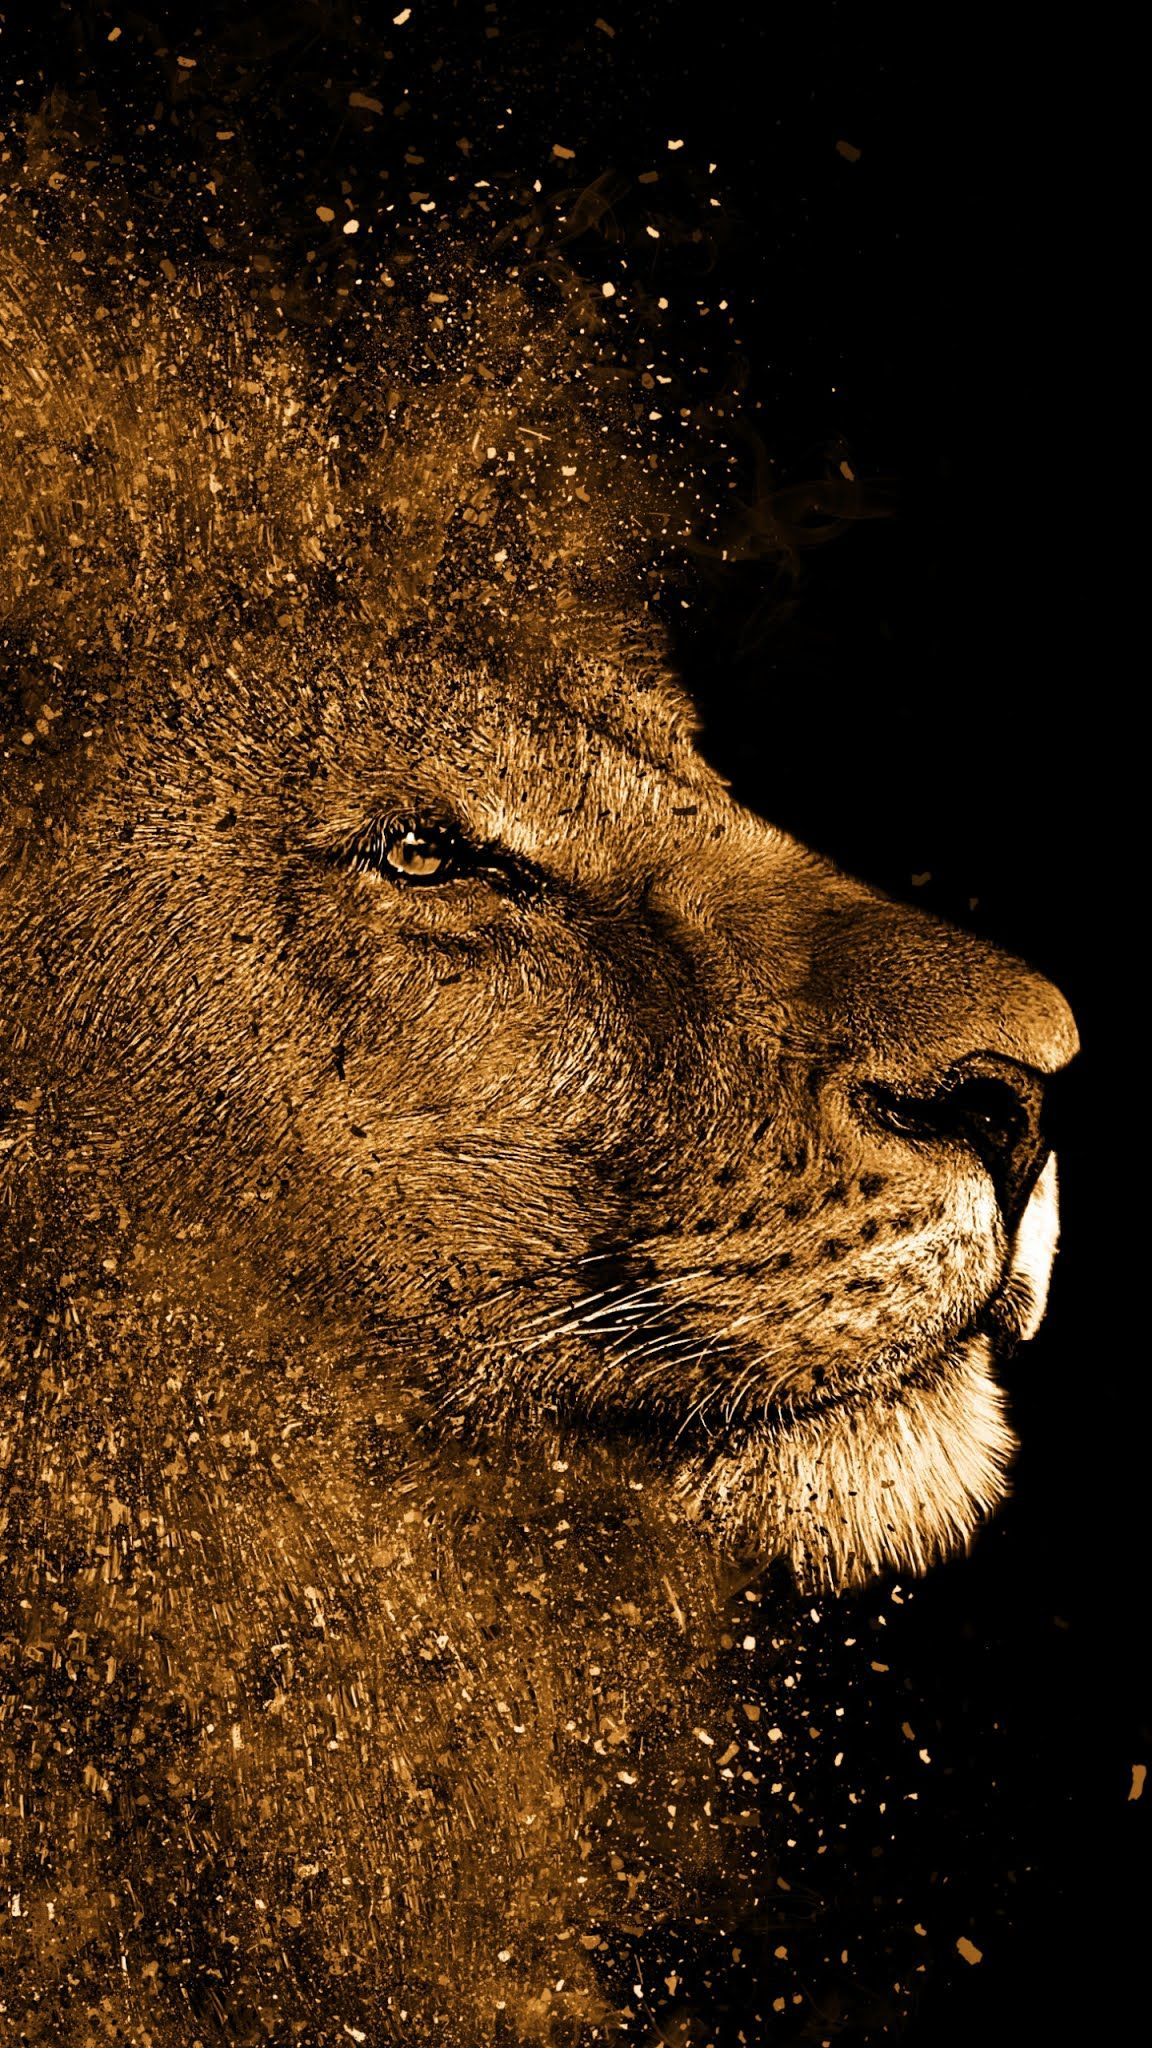 Download Lion Painting Art Work Wallpaper For Your Android Iphone Wallpaper Or Ipad Tablet Wallpapers In Hd Quality In 2020 Lion Painting Lion Painting Art Lion Art